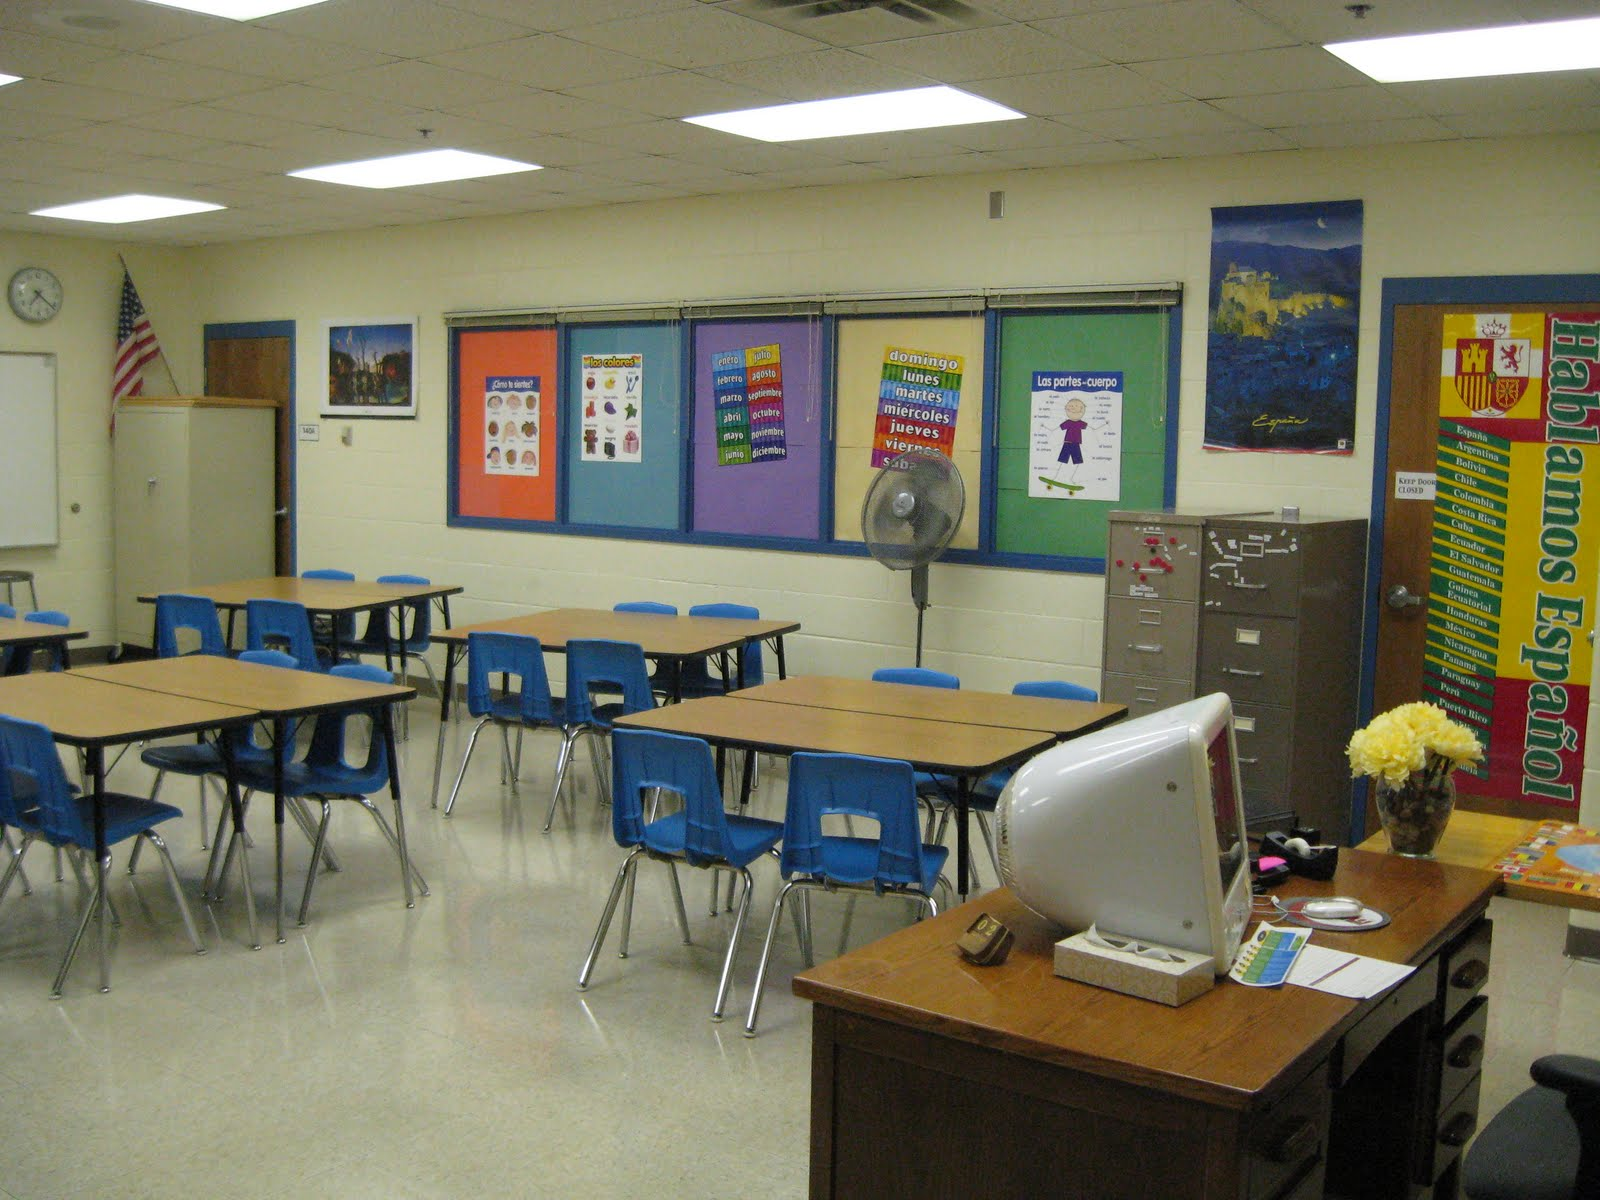 High School Classroom Decor Themes : Project decoration classroom decorations